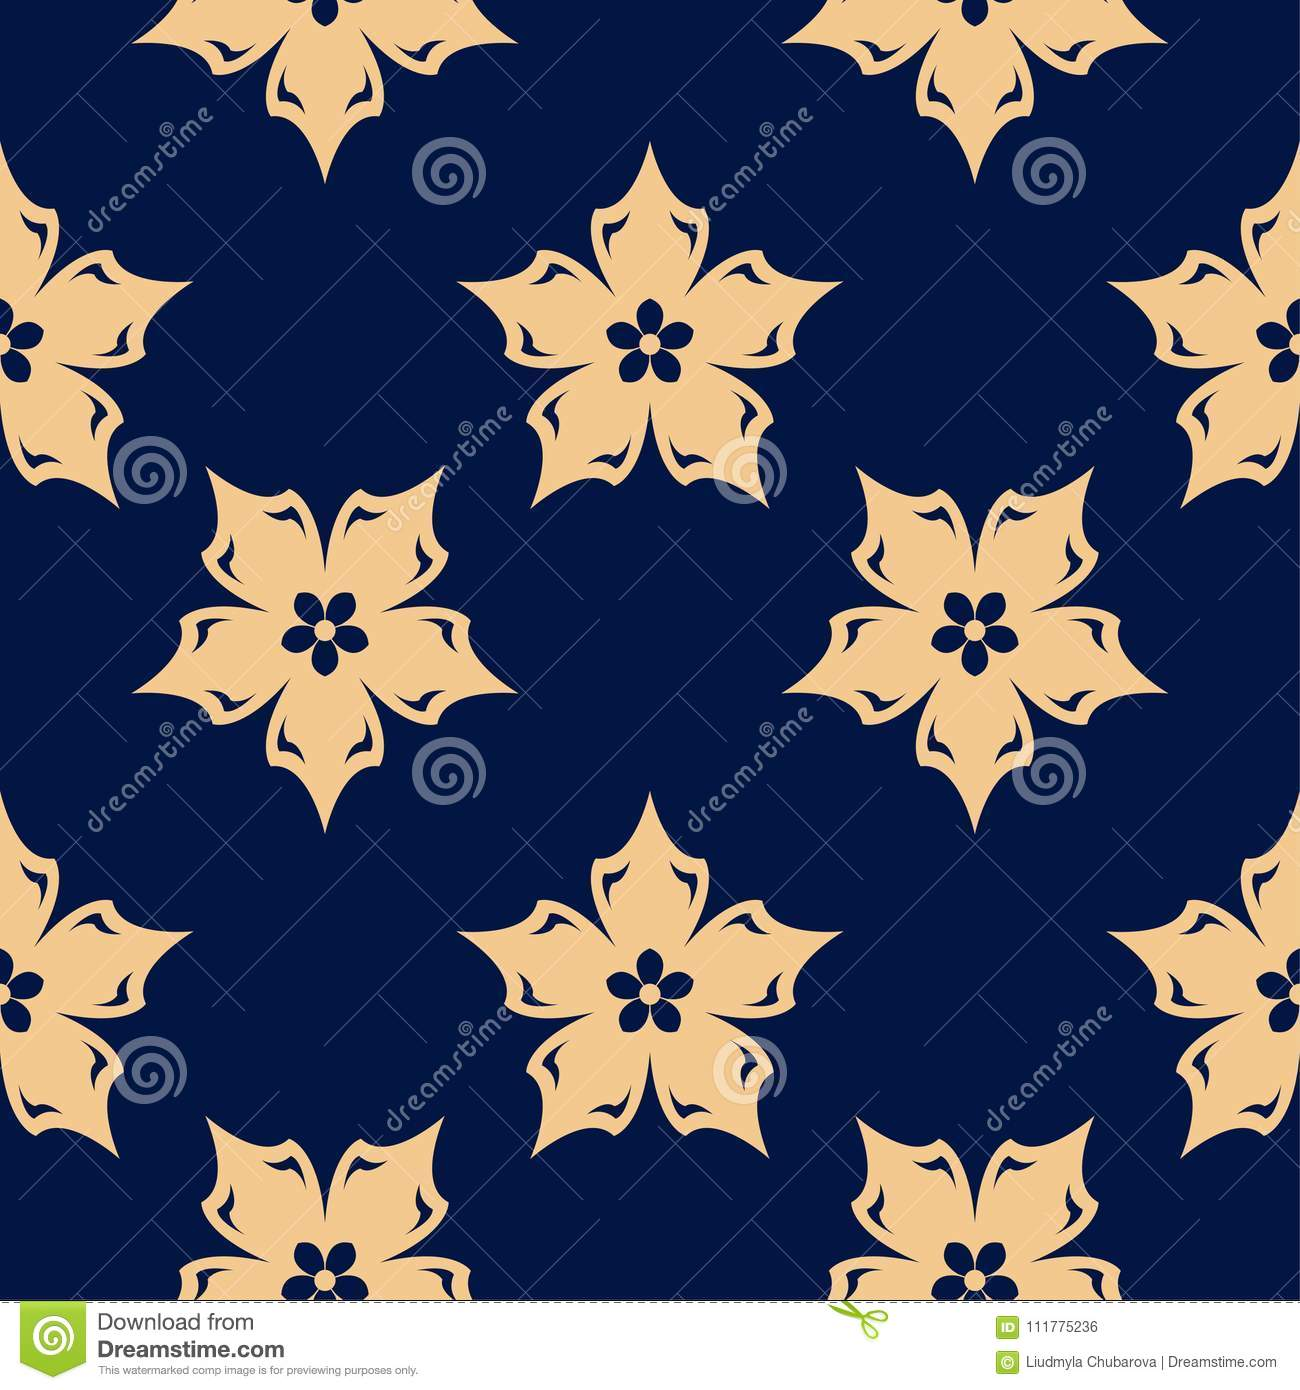 Golden floral element on dark blue background. Seamless pattern